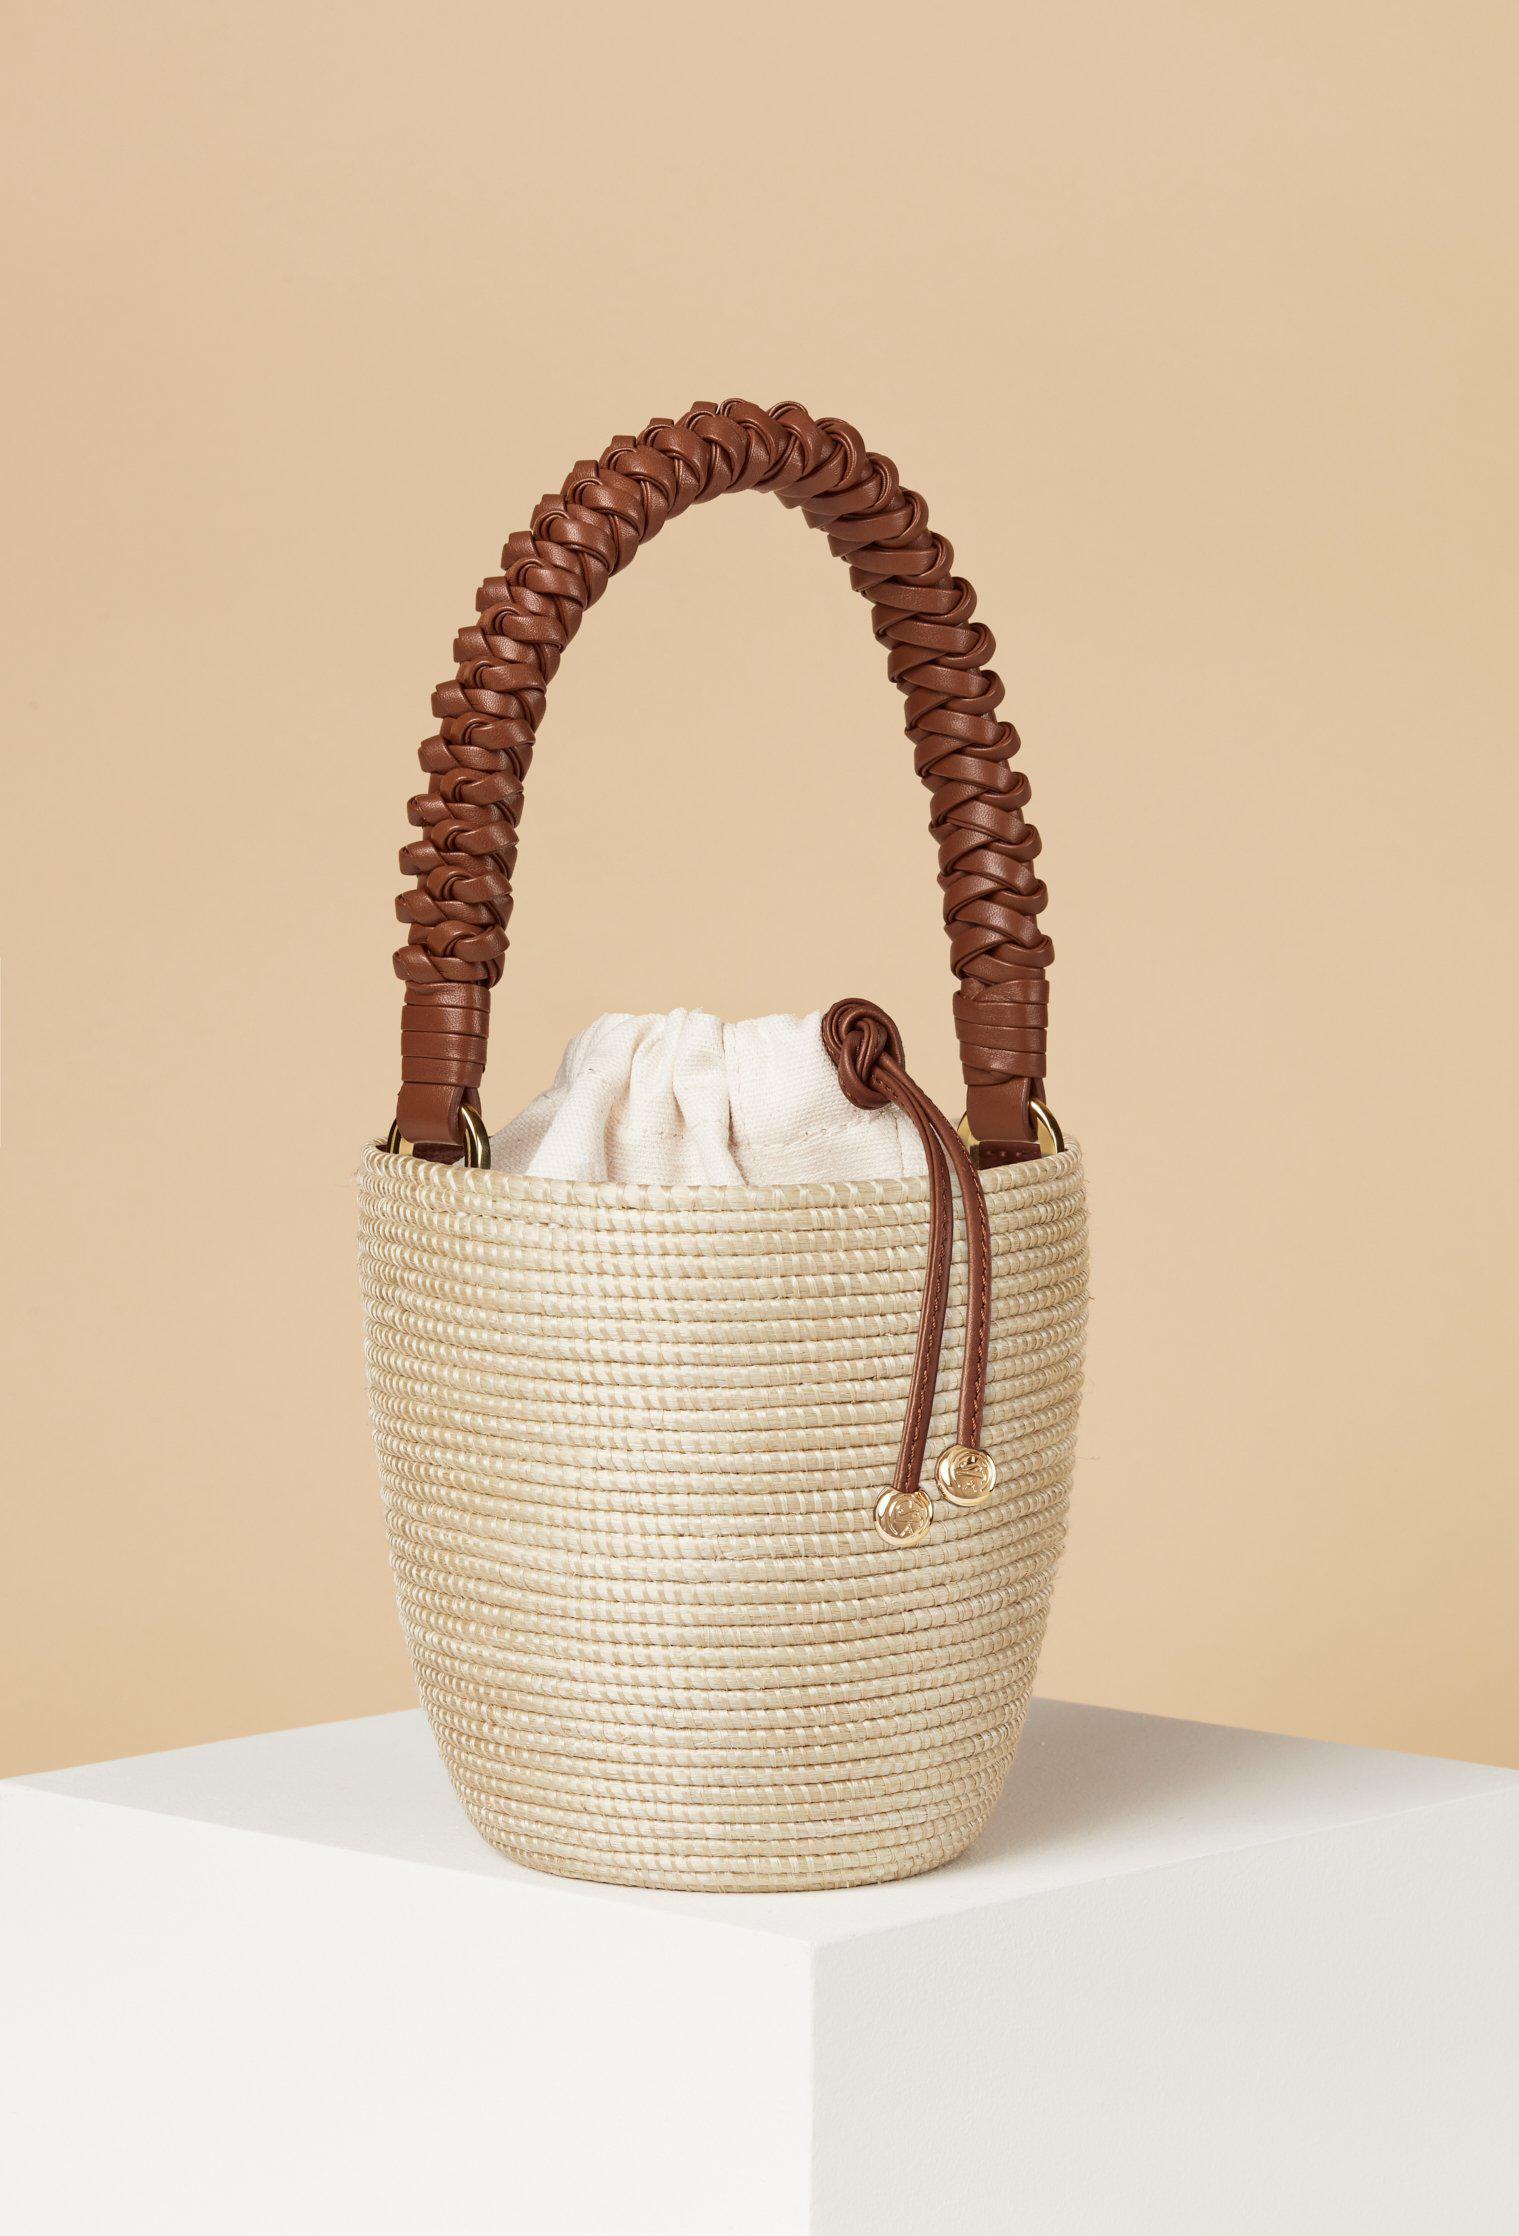 Woven Handle Lunchpail / Papyrus